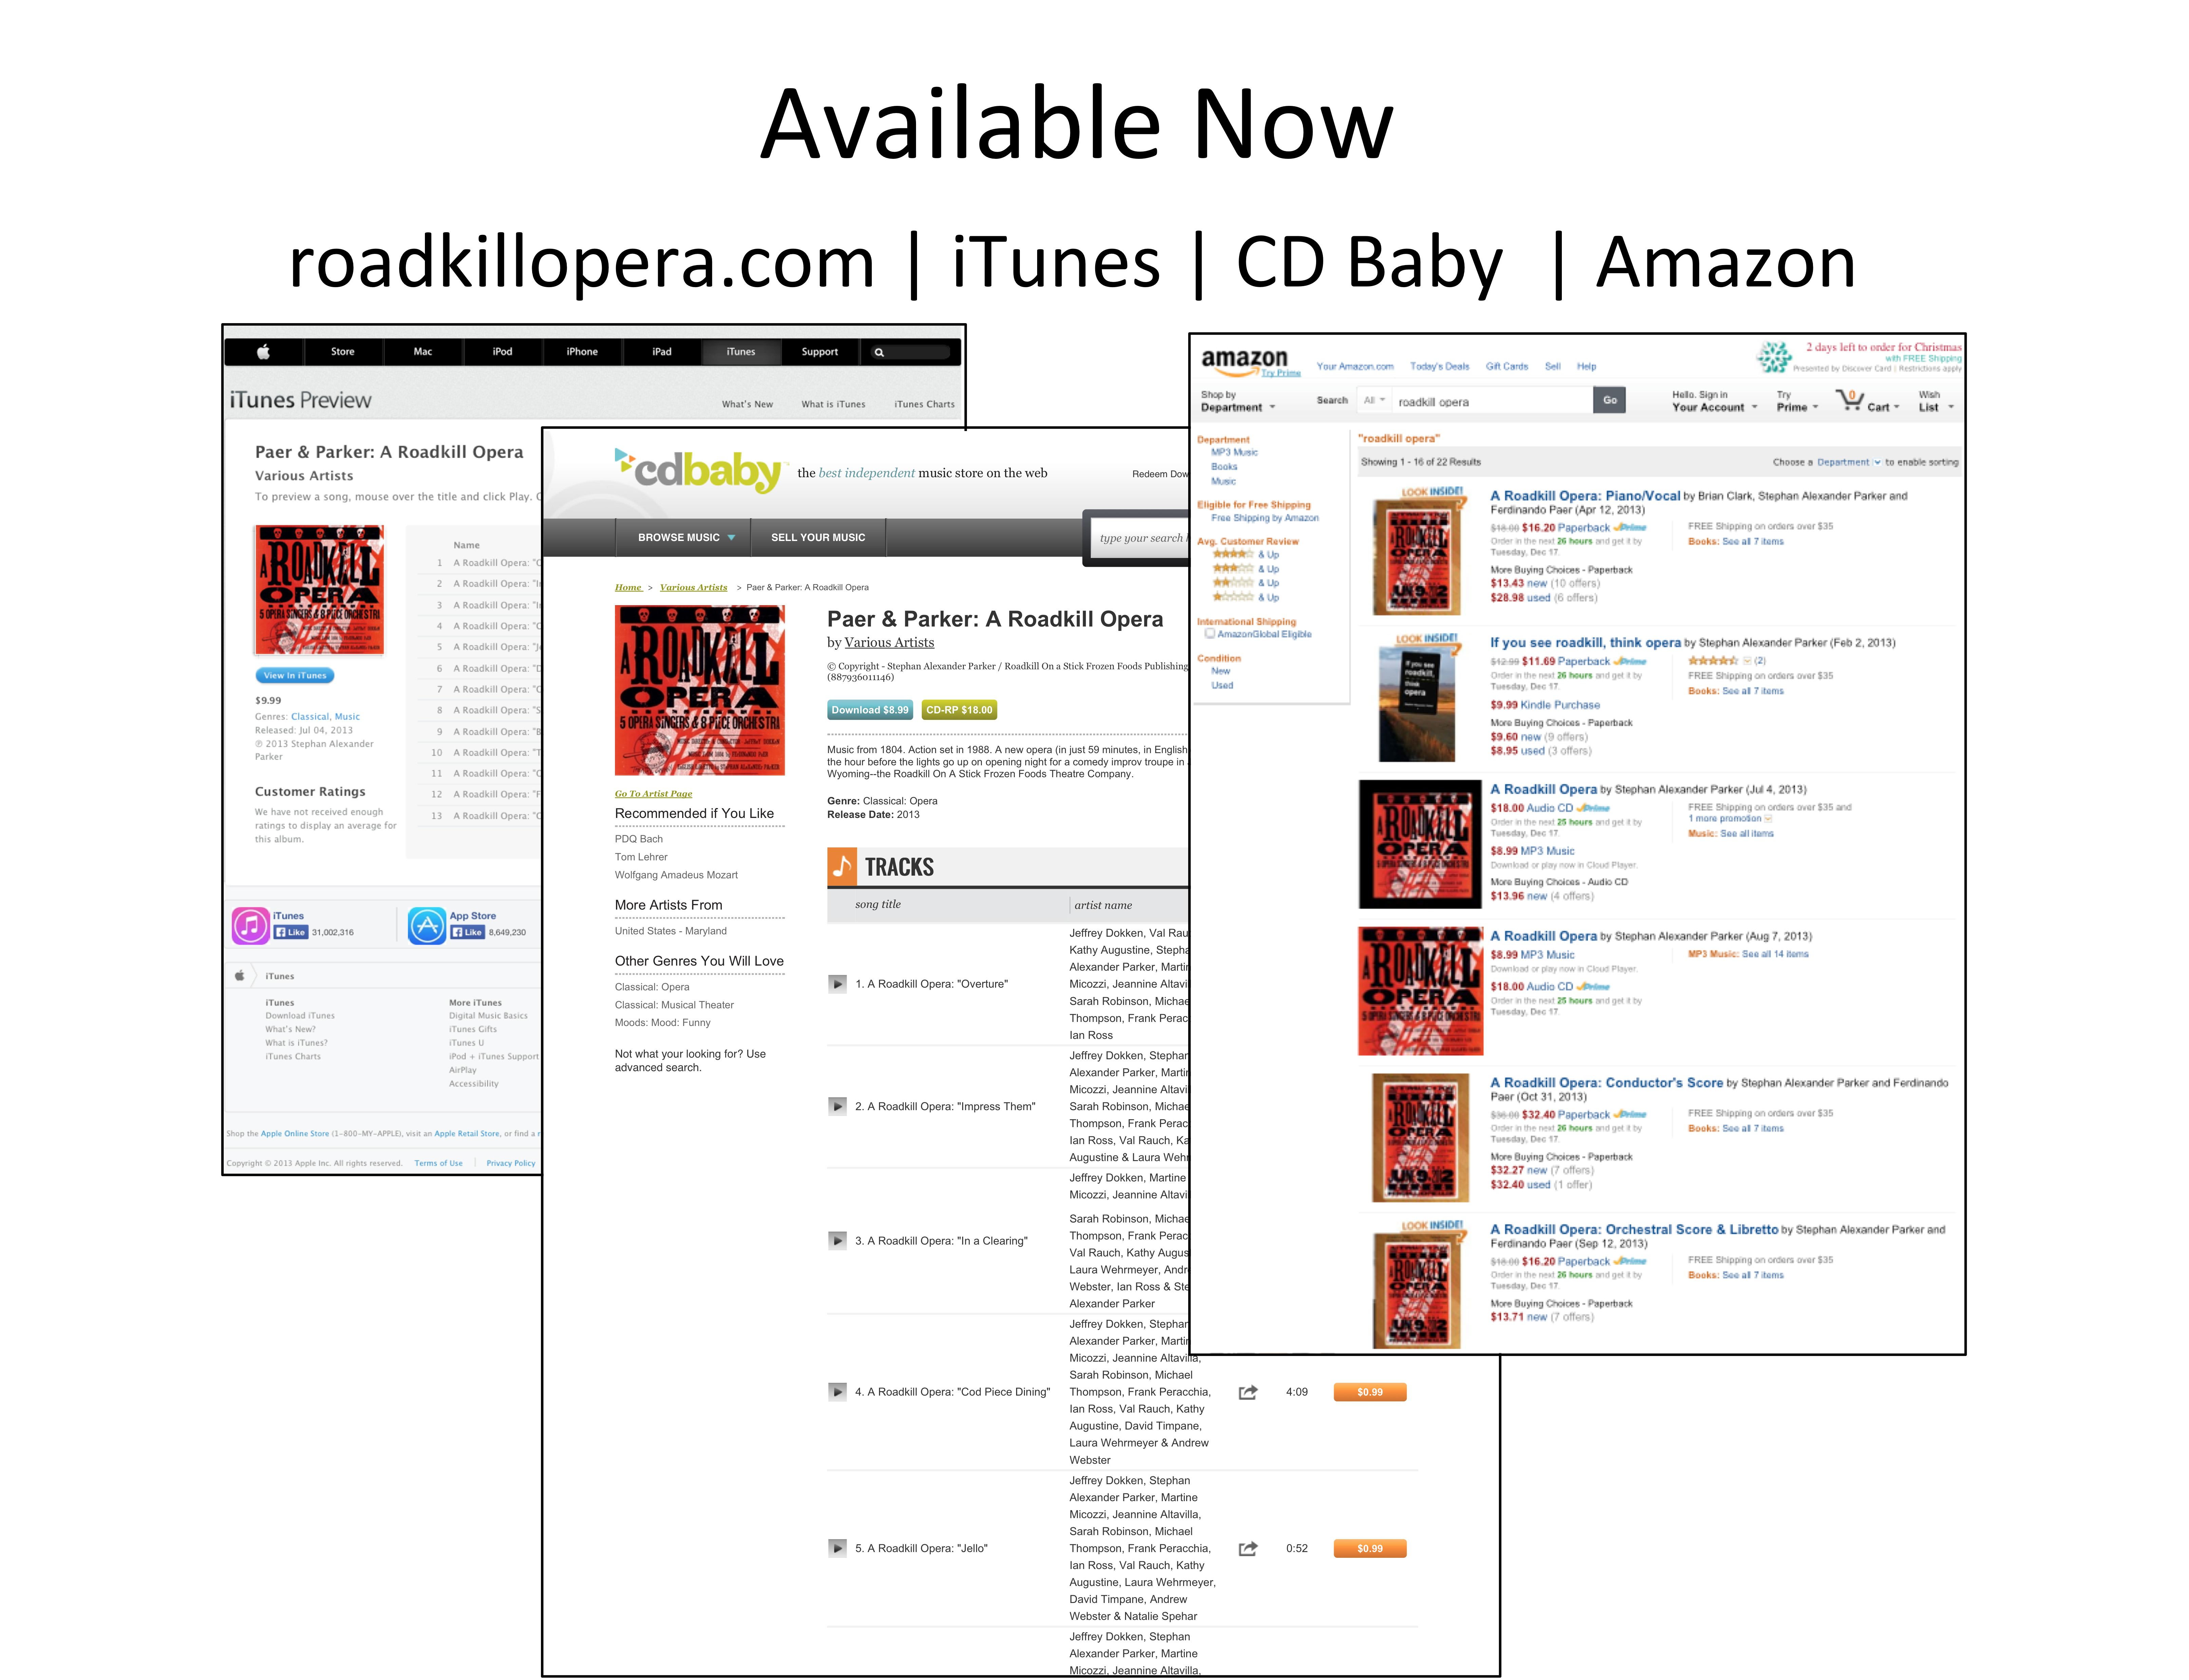 Photo showing ordering pages for iTunes, CDS Baby, and Amazon